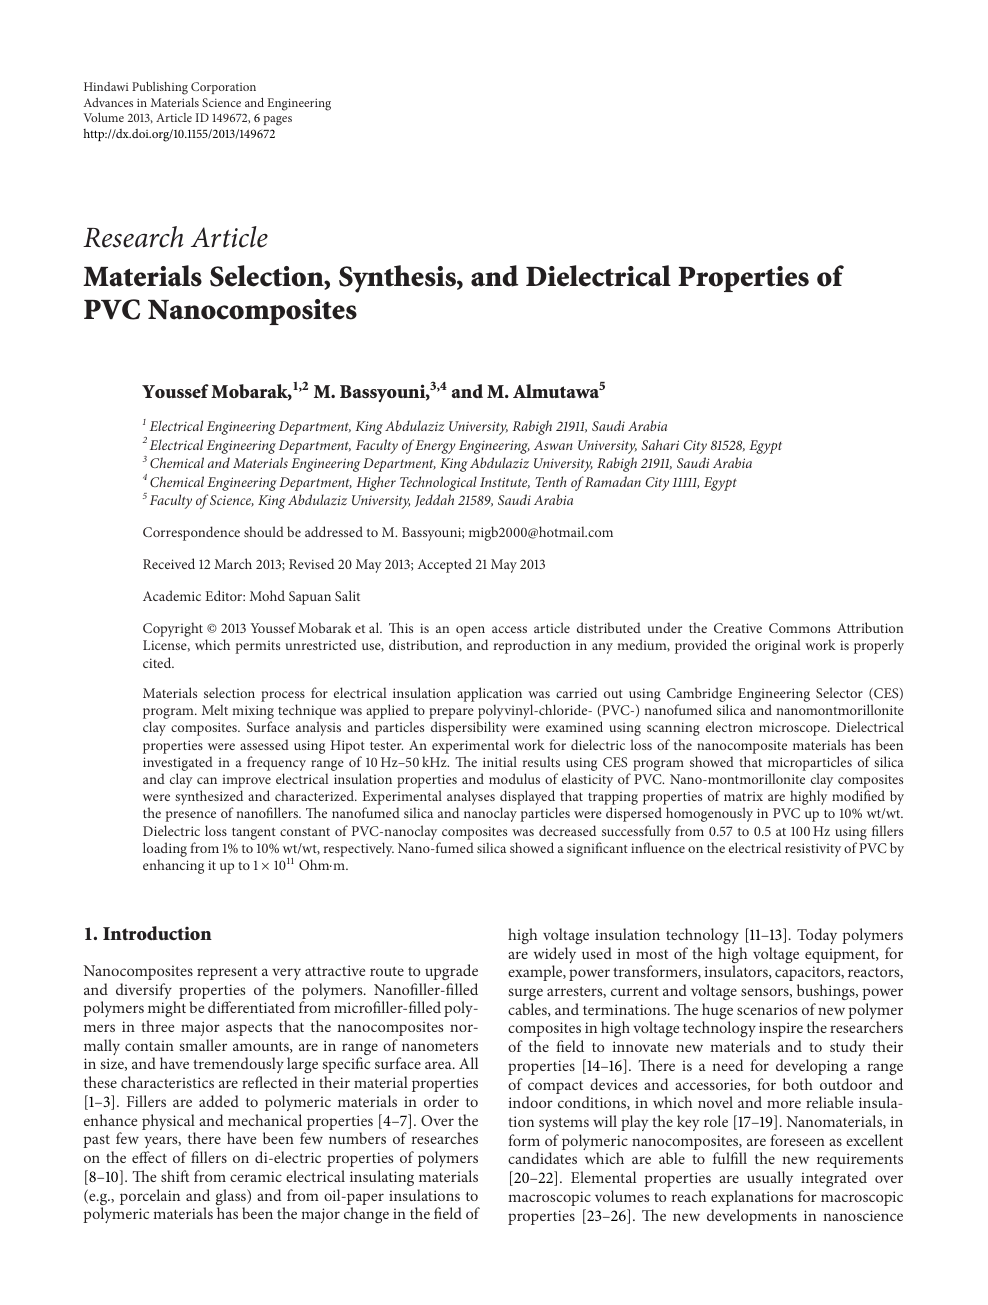 Materials Selection, Synthesis, and Dielectrical Properties of PVC